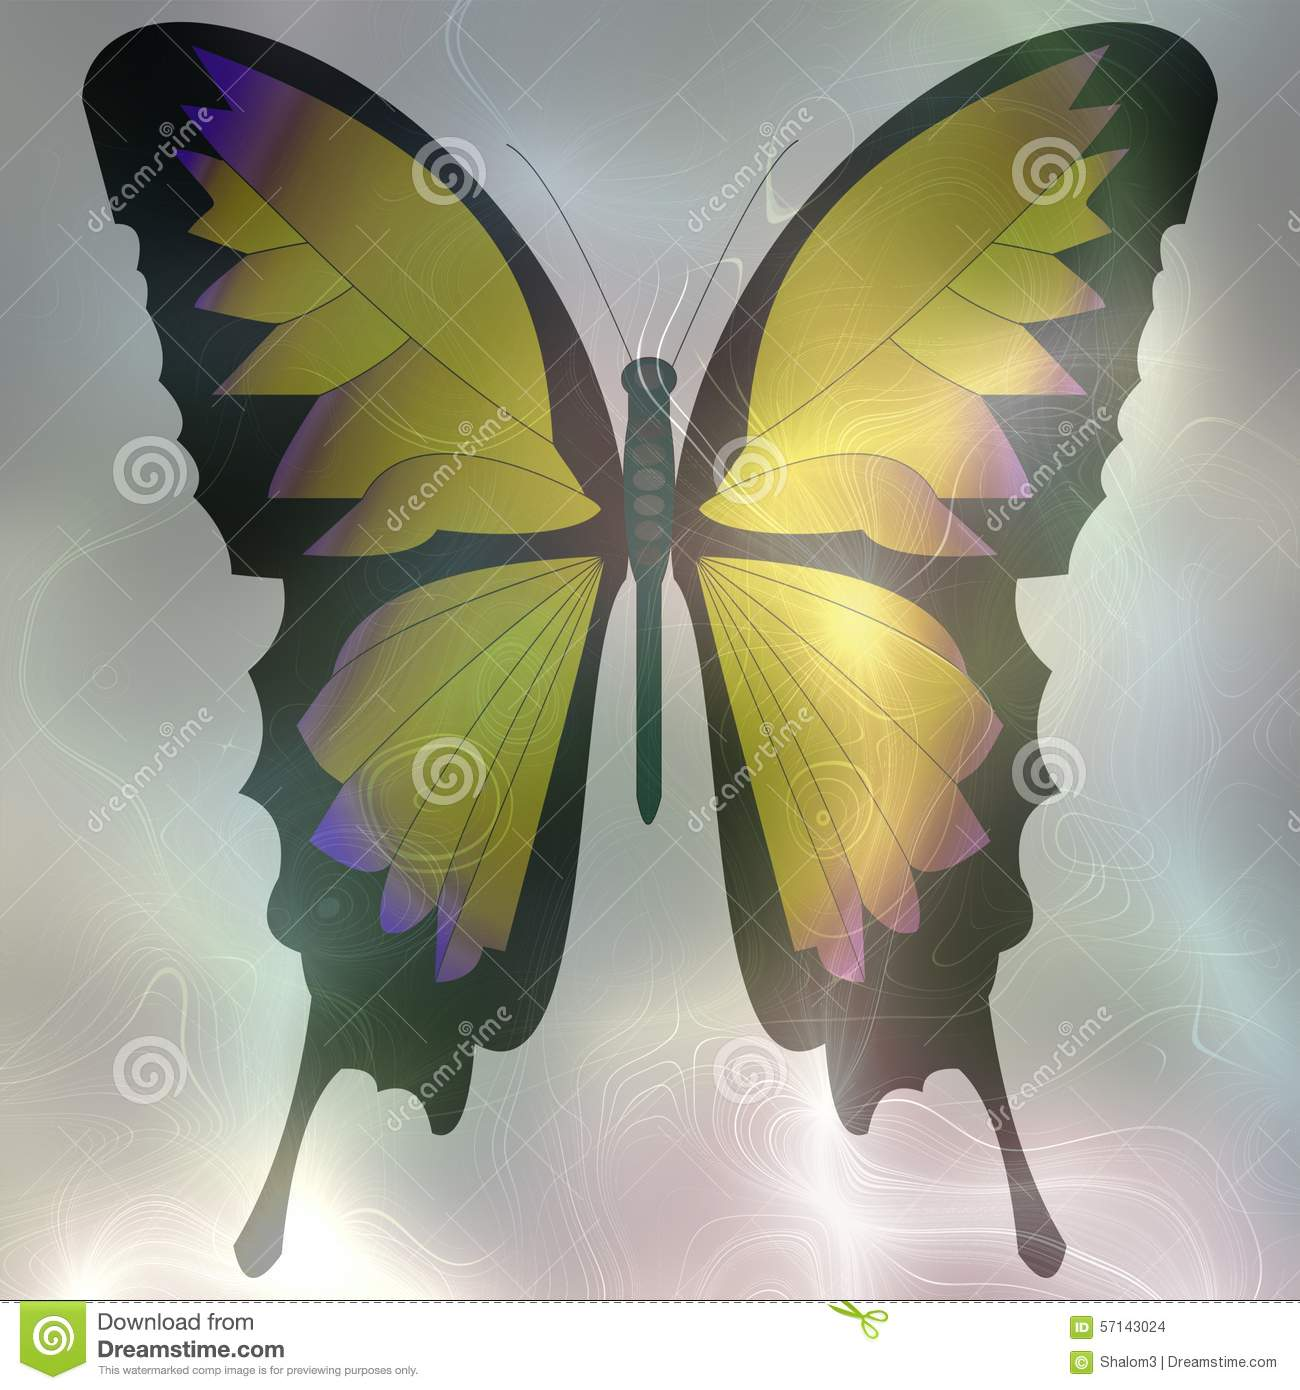 Softly Rendered Image Of A Butterfly With Pastel Colors To Smoke ...